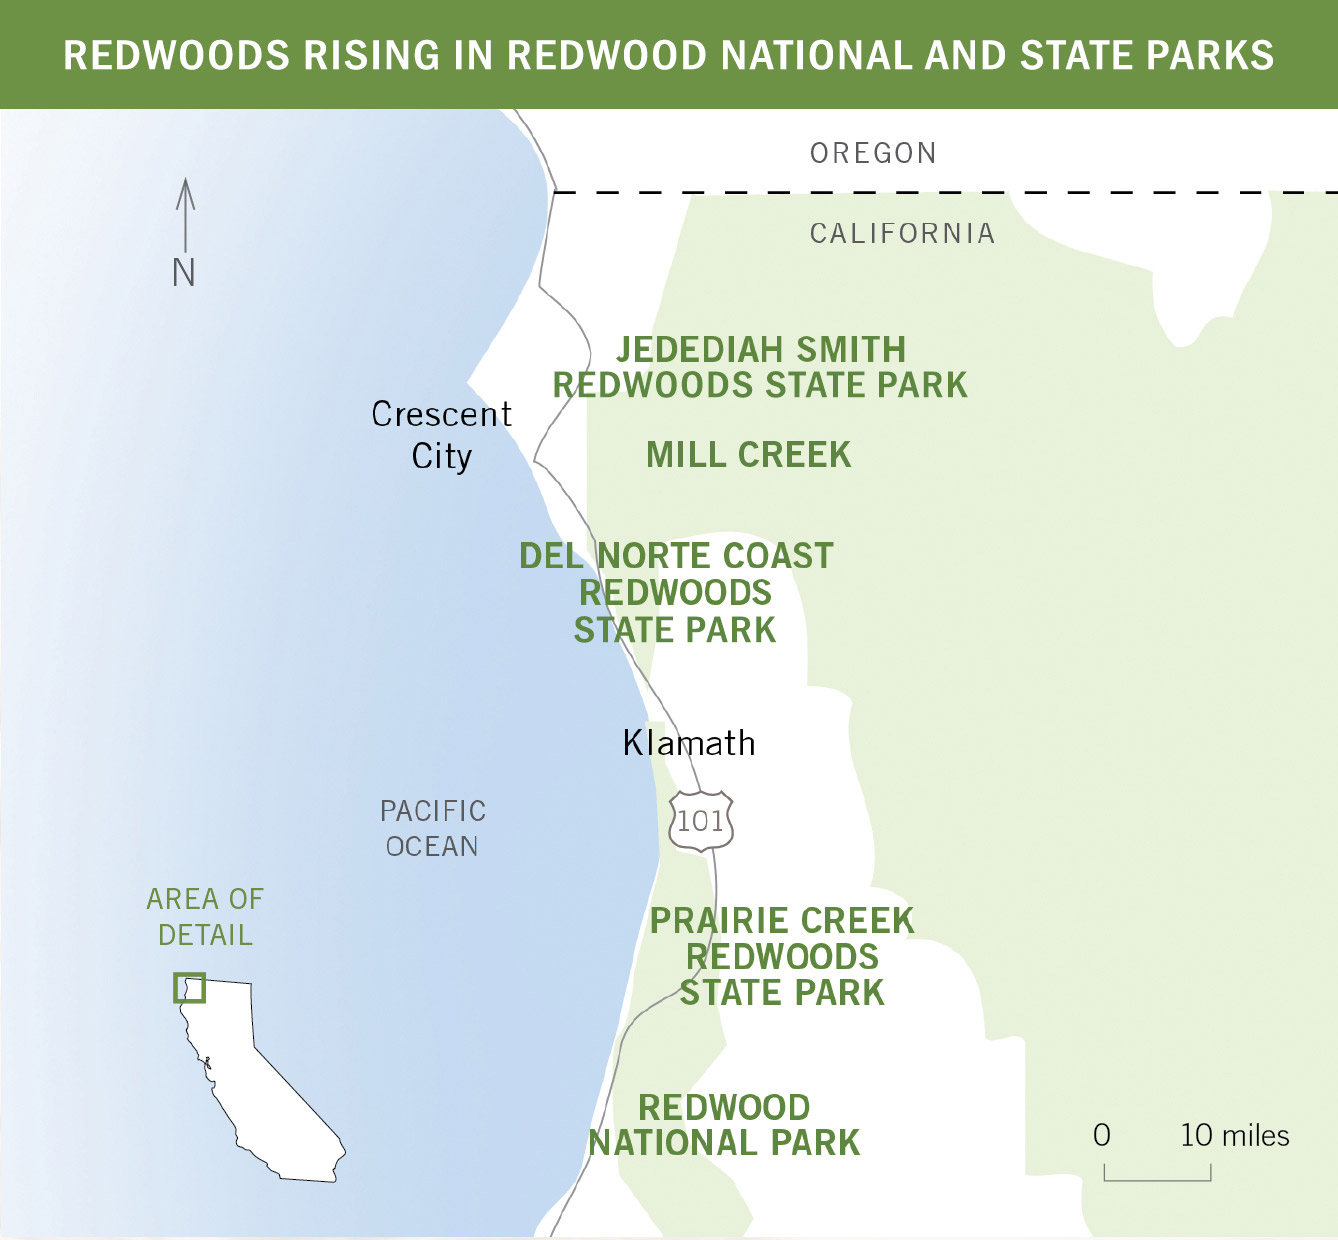 REDWOODS RISING IN REDWOOD NATIONAL AND STATE PARKS